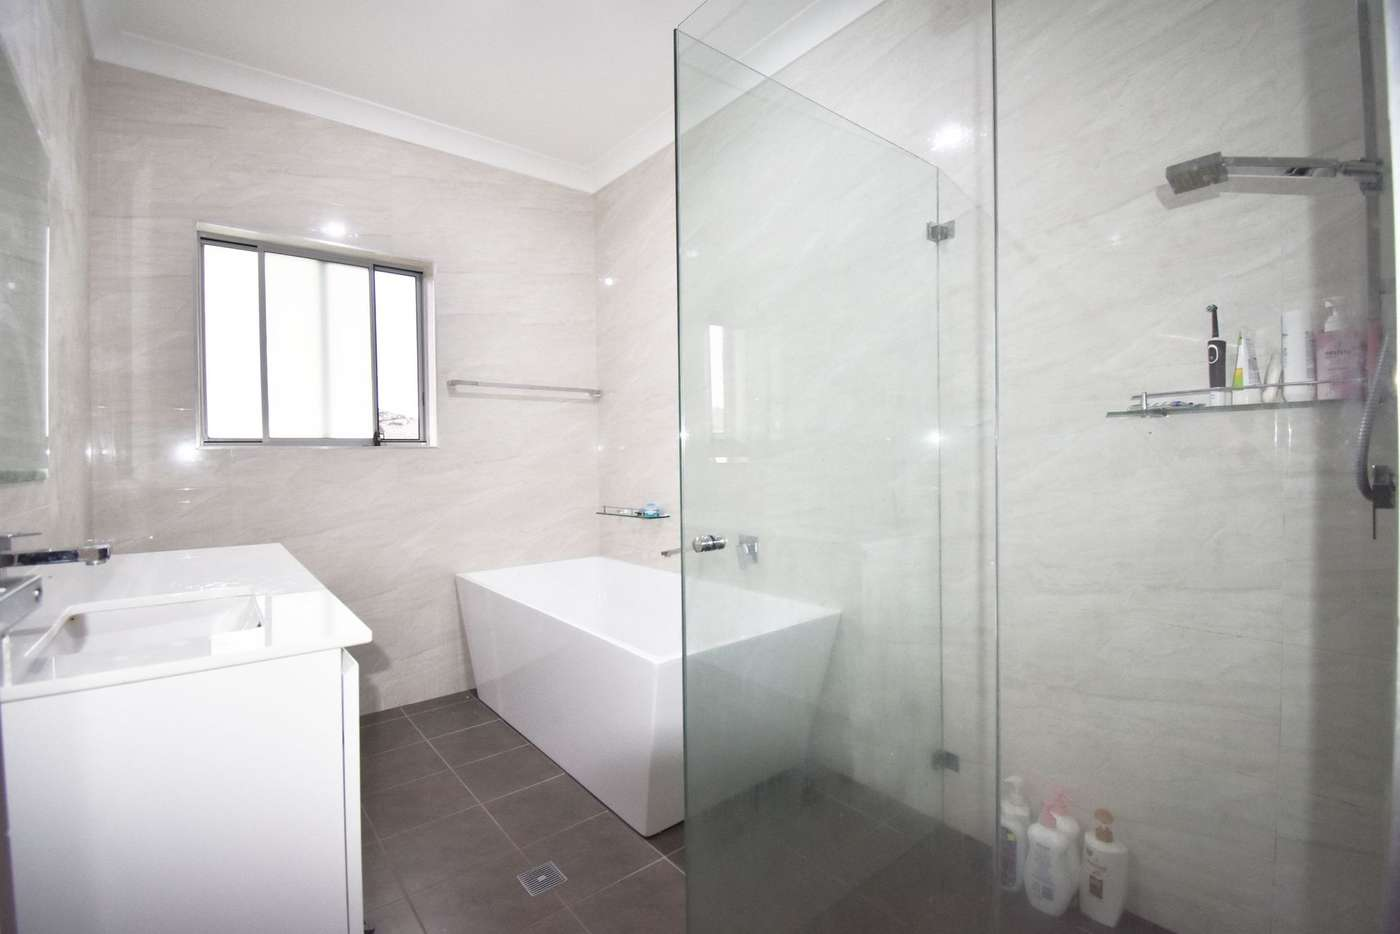 Sixth view of Homely house listing, 96 Water Street, Cabramatta West NSW 2166